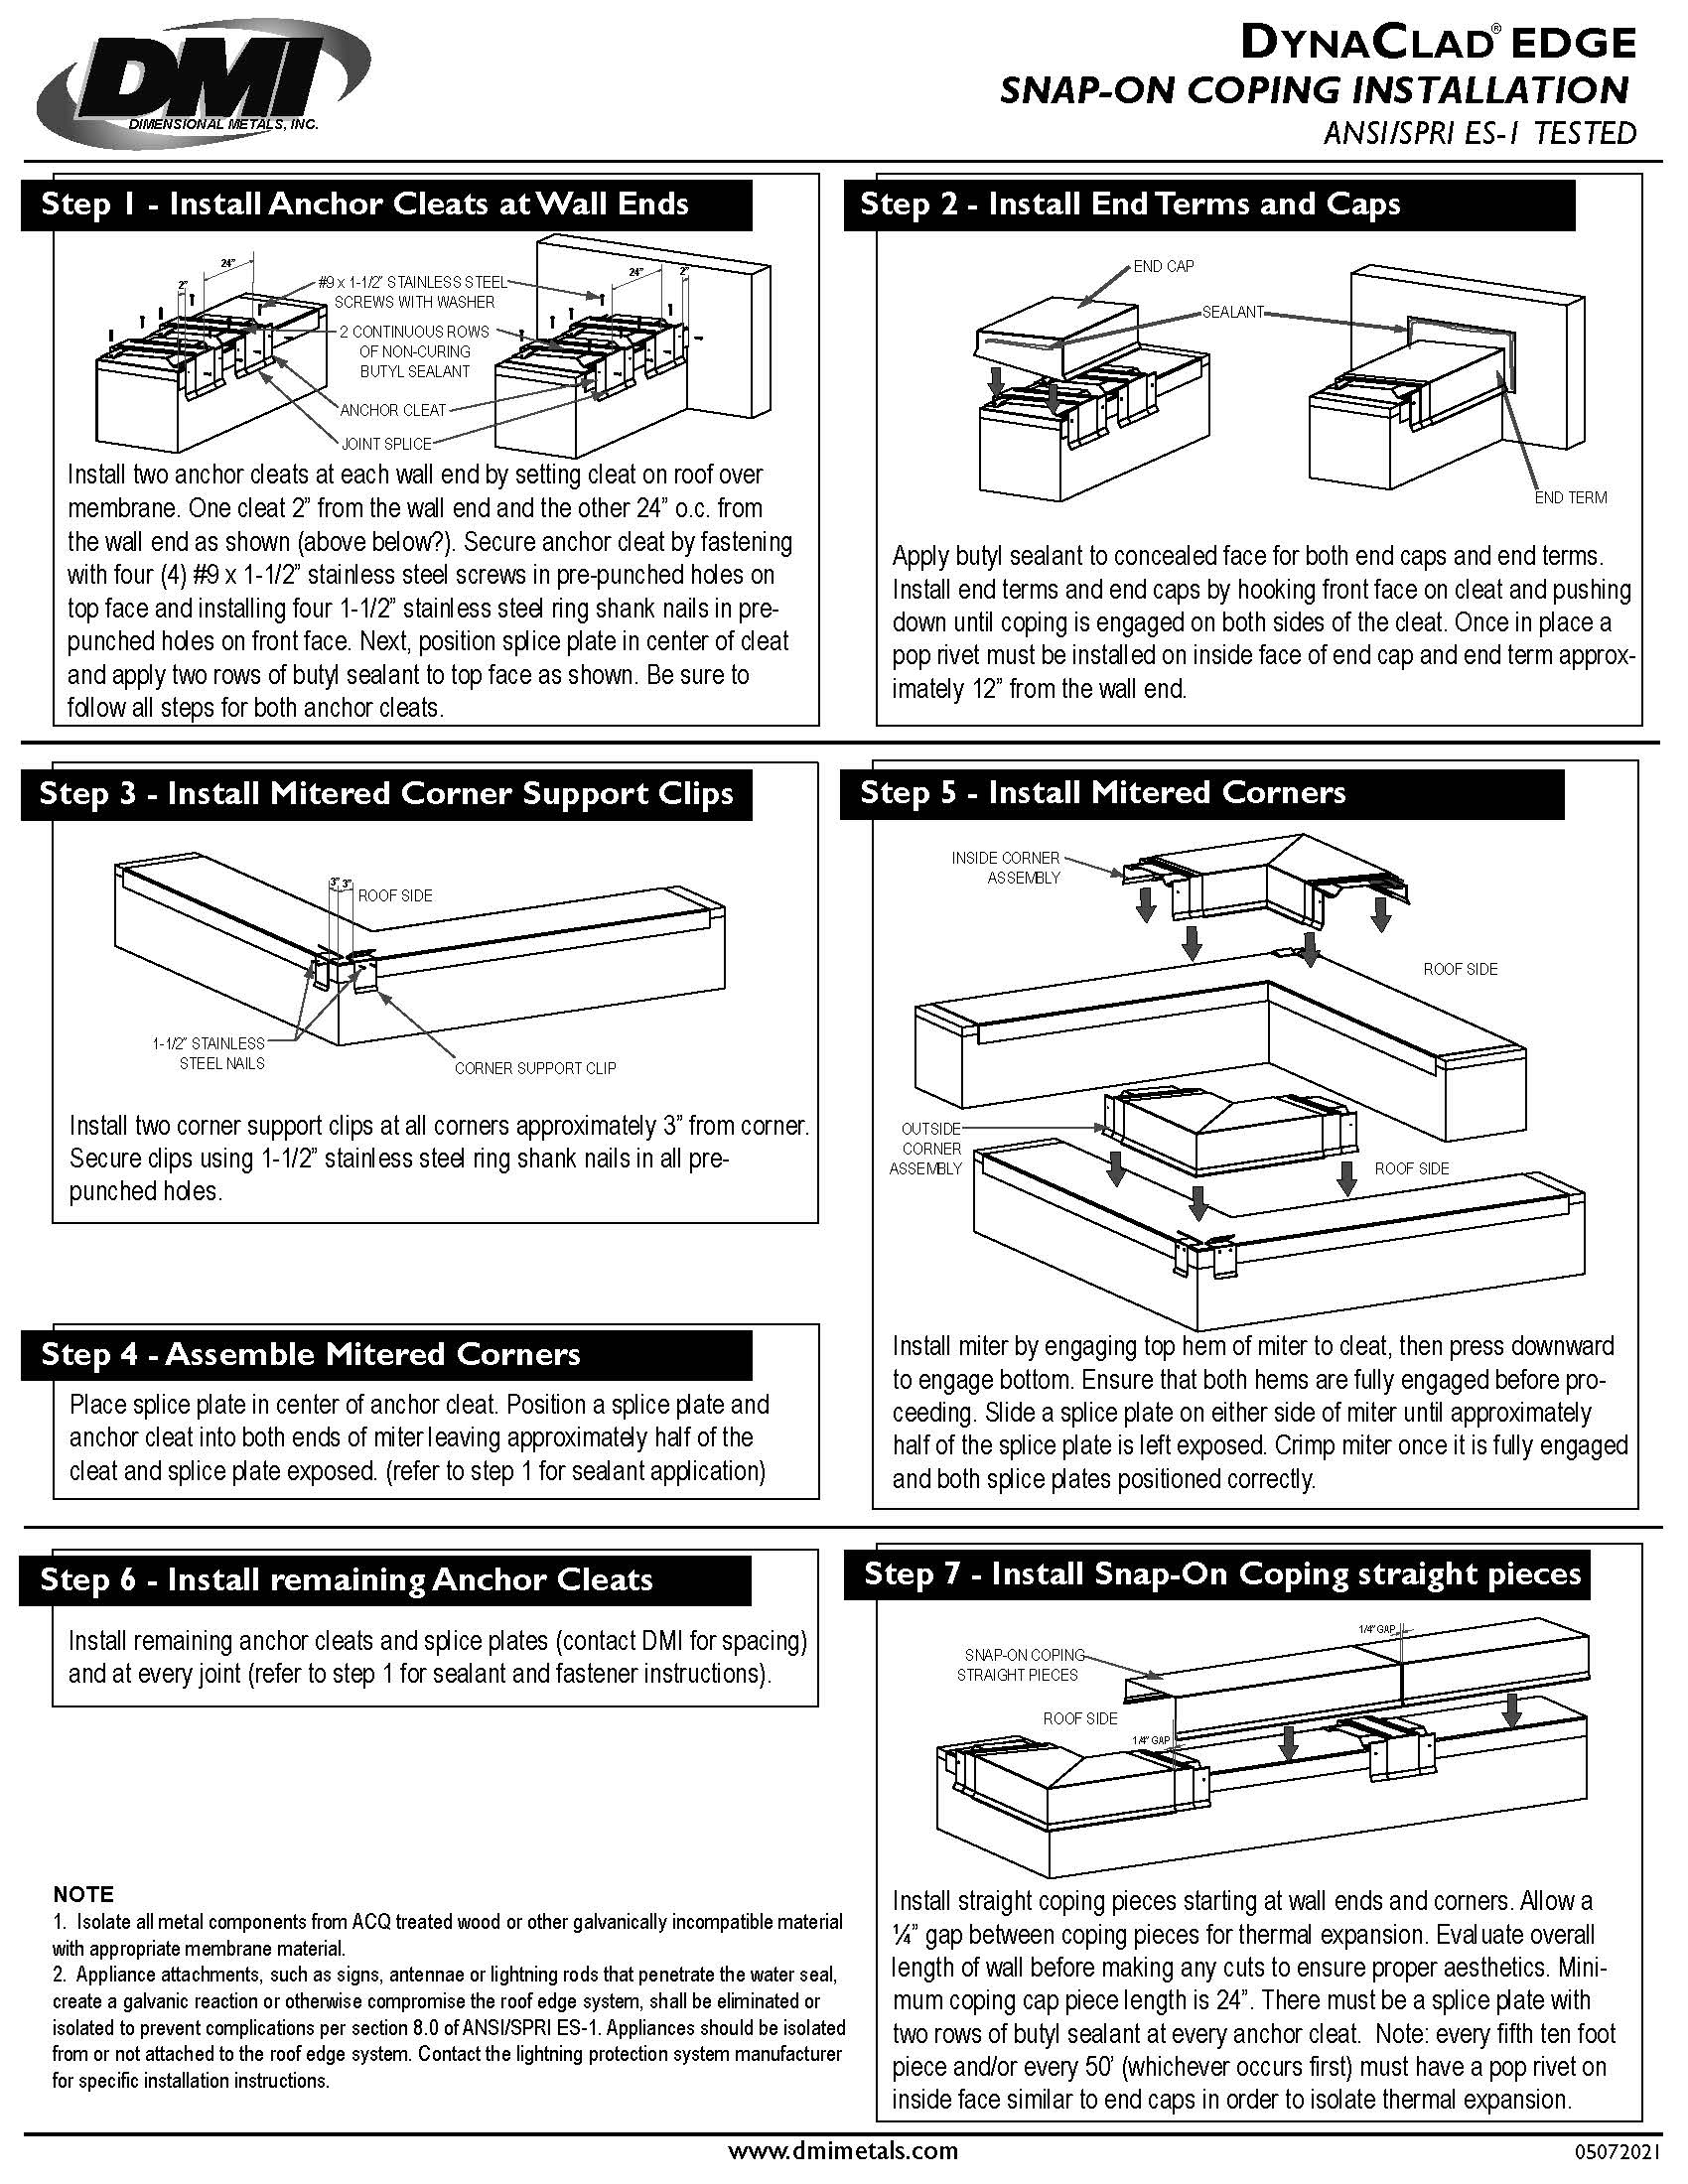 Snap-On Coping Installation Guide